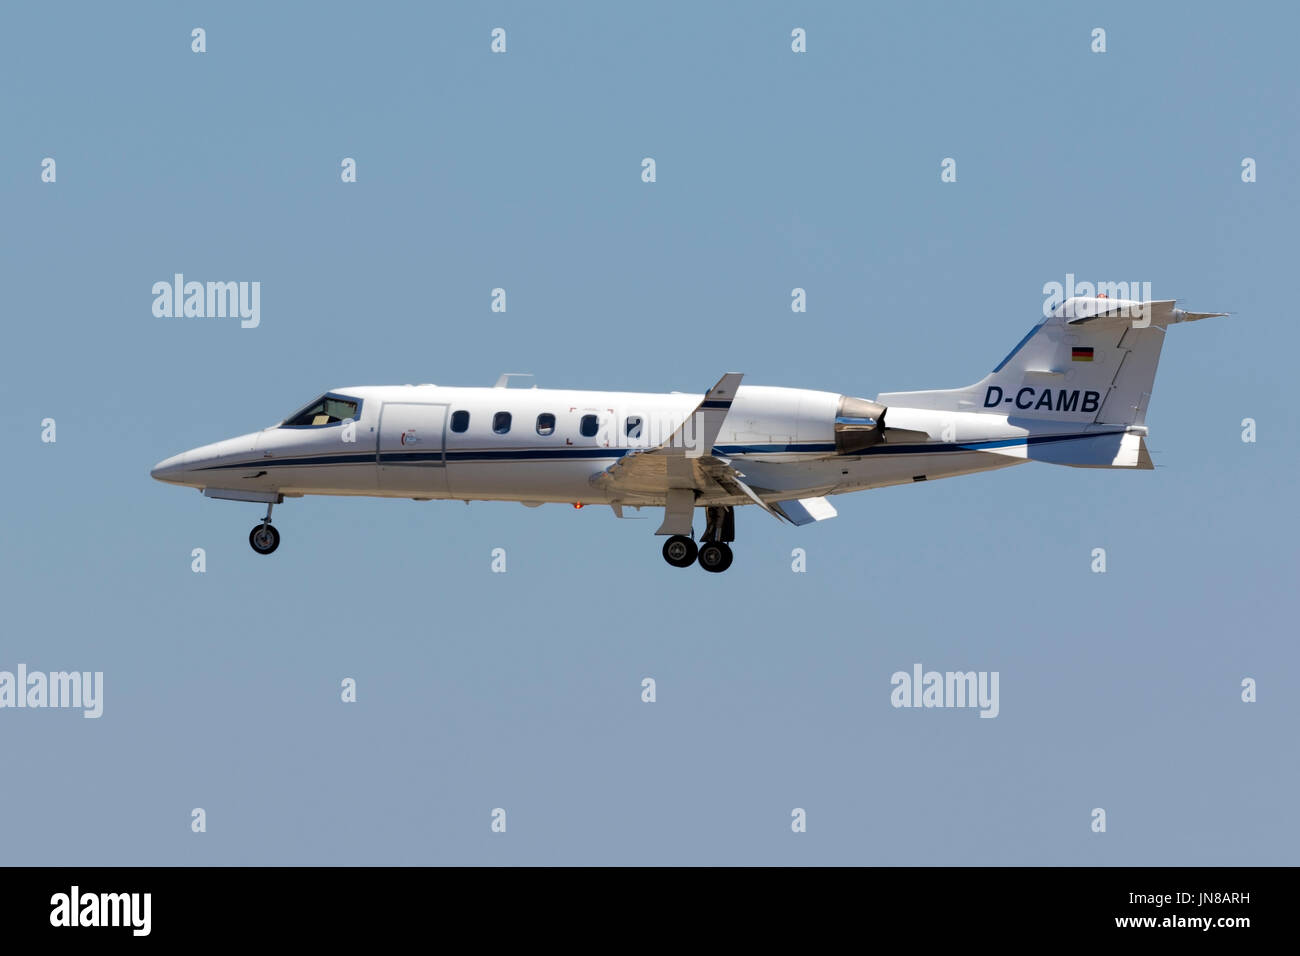 A private German registered Learjet 31A [D-CAMB] on final approach in the hot midday sun. - Stock Image